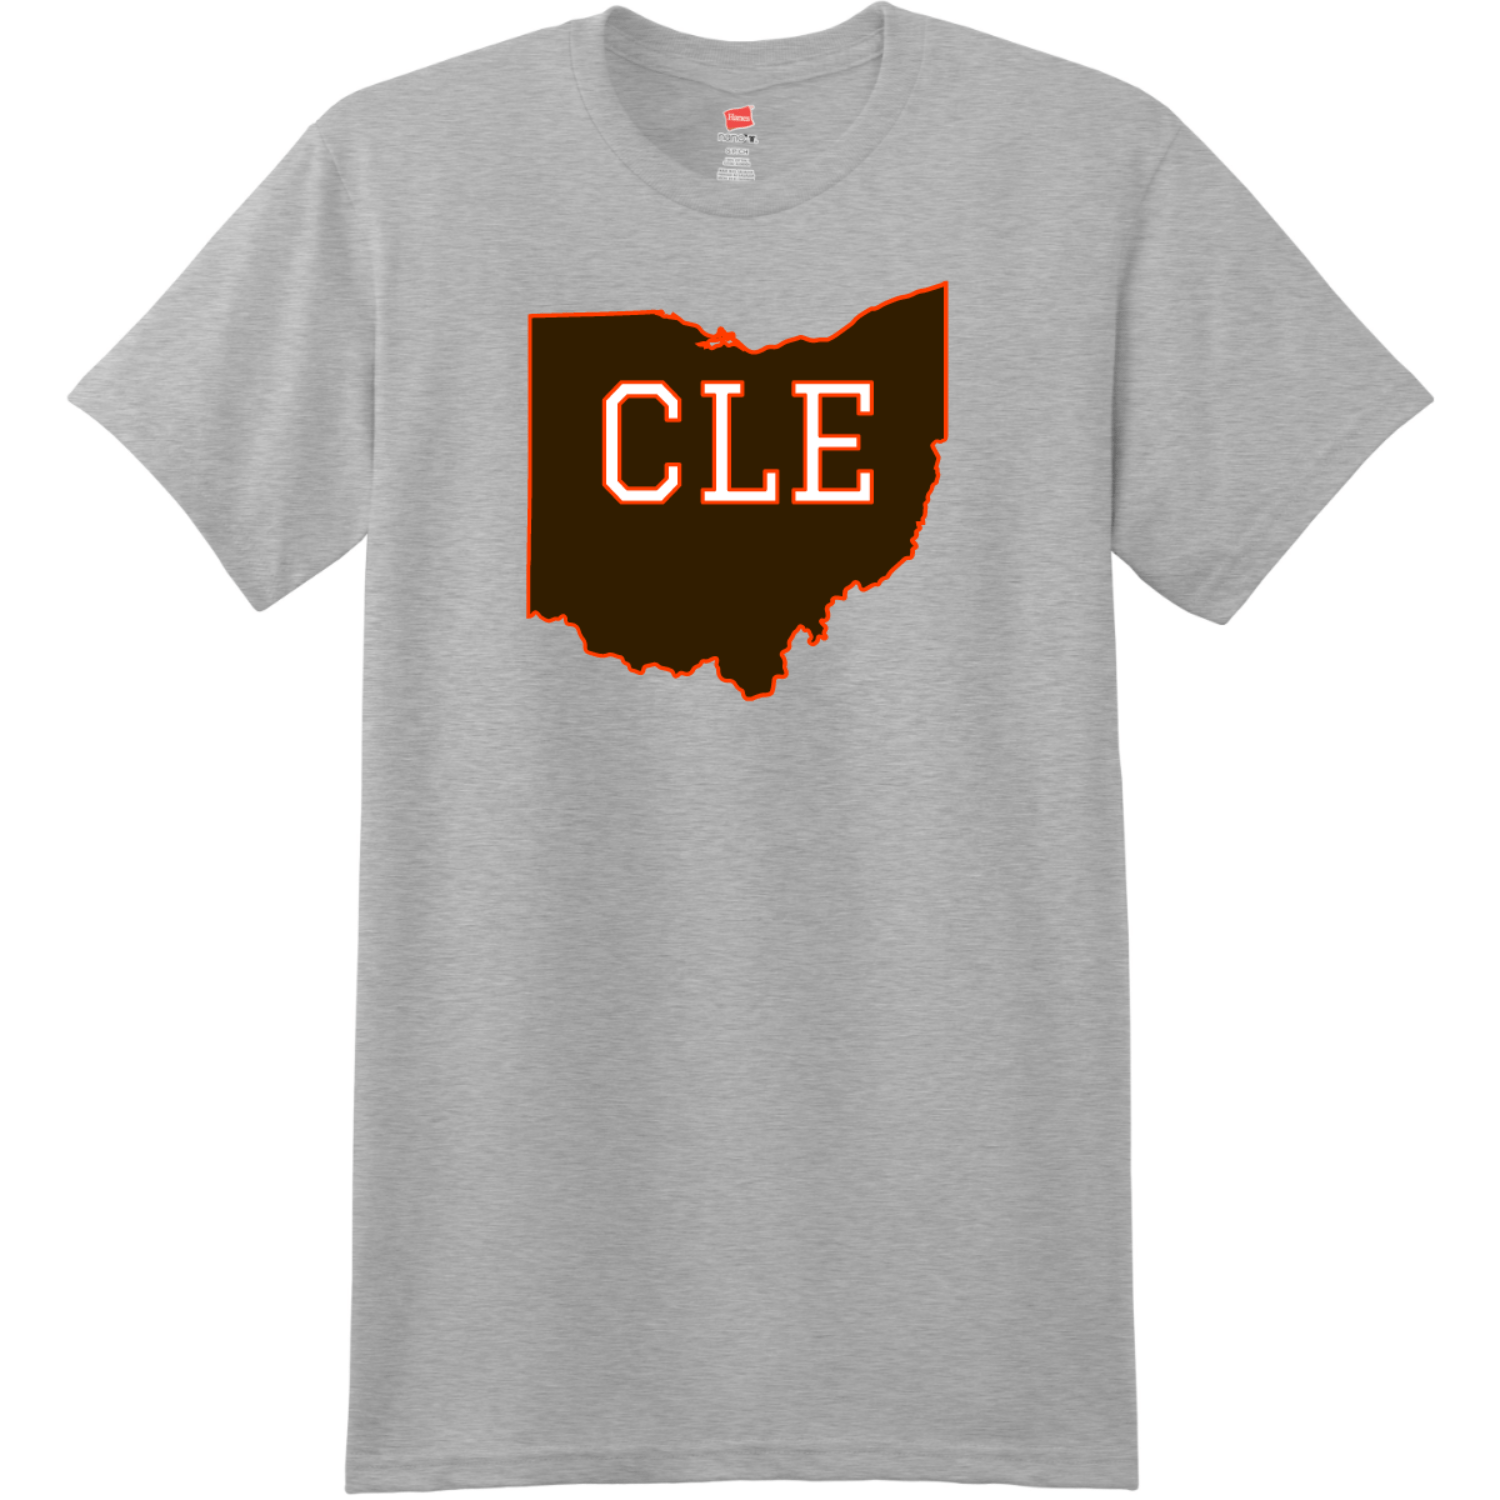 CLE Cleveland Ohio State T Shirt Light Steel Hanes Nano 4980 Ringspun Cotton T Shirt